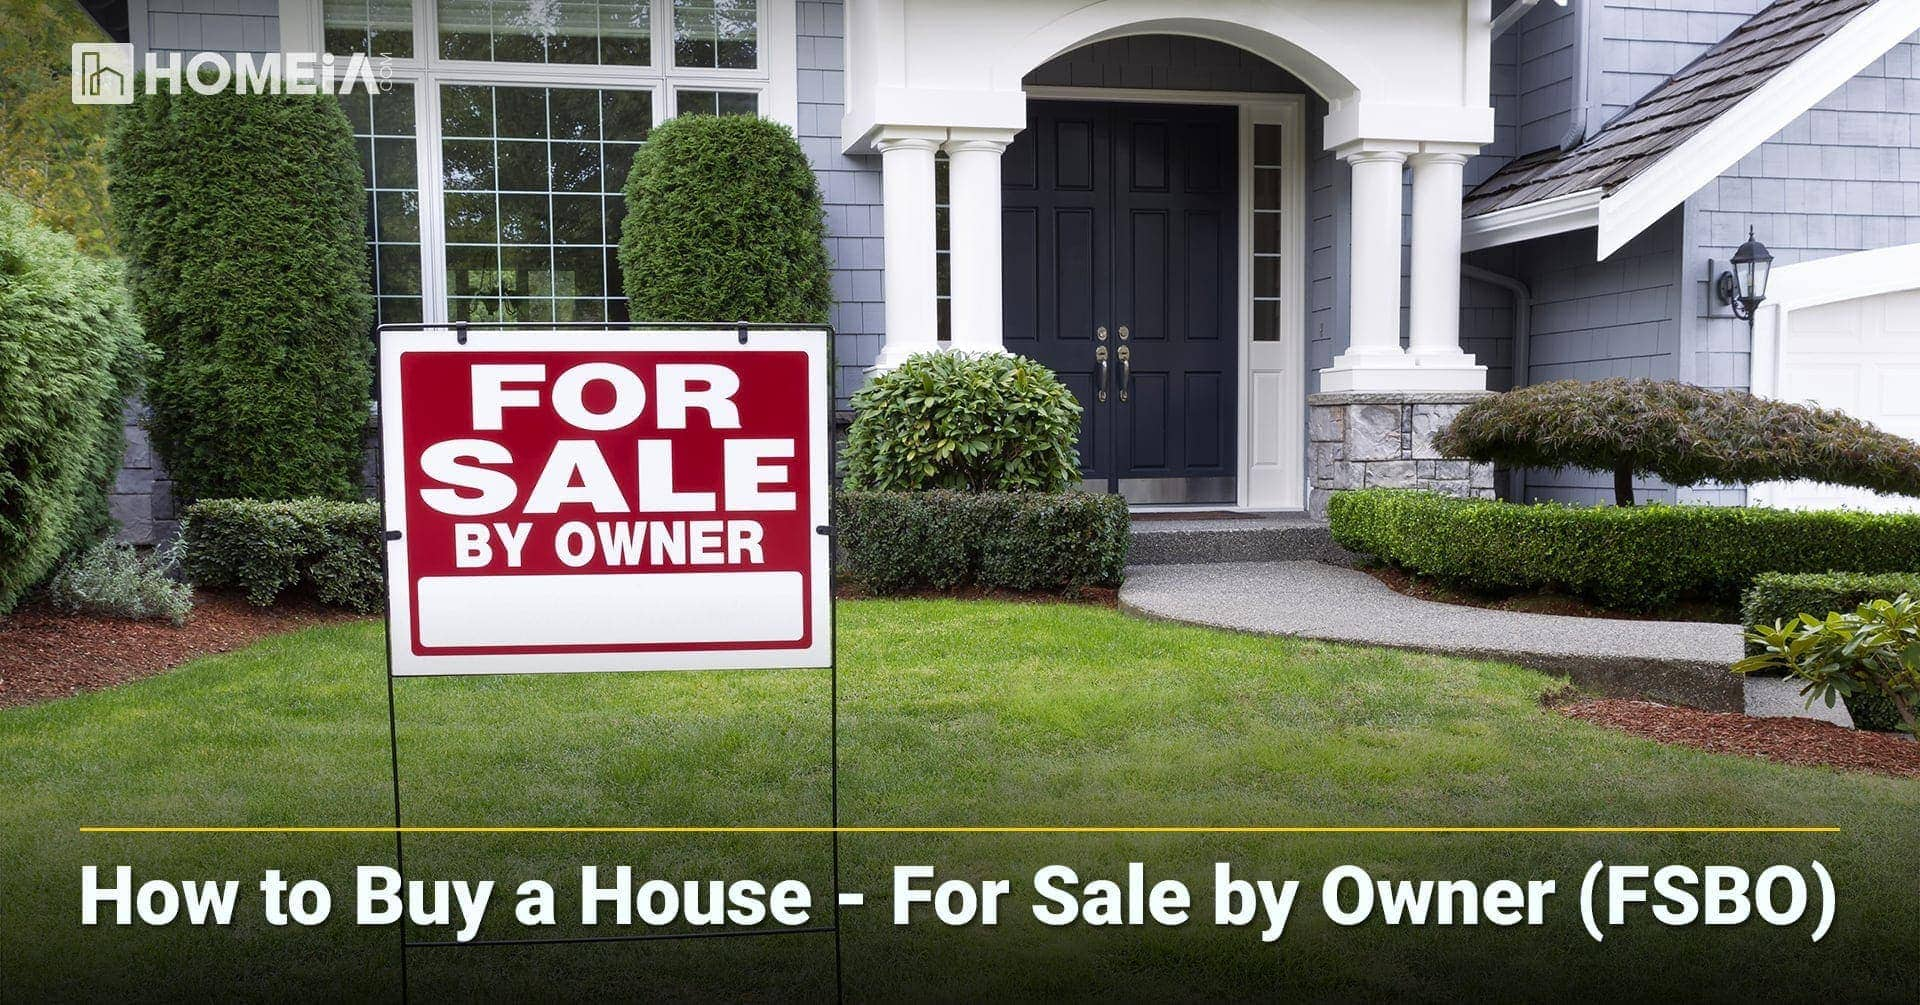 How to Buy a House - For Sale by Owner (FSBO)